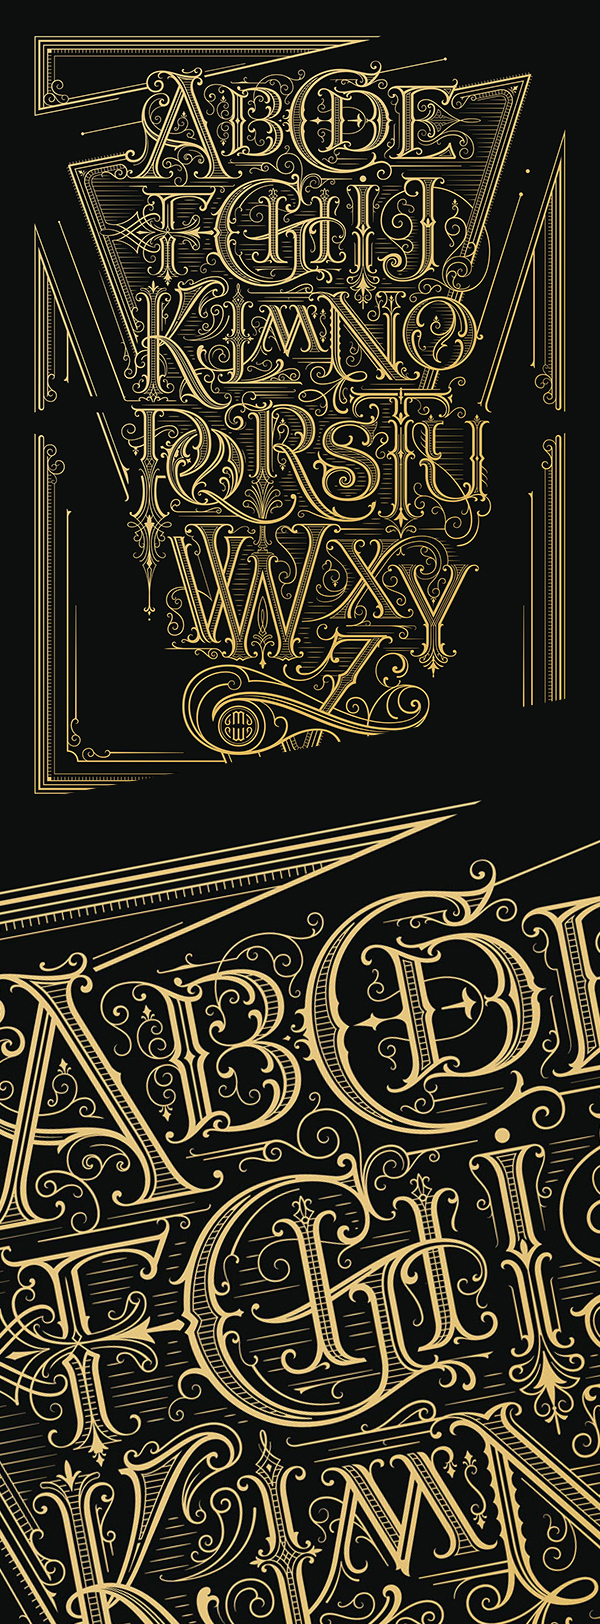 A to Z: The Alphabet Typography